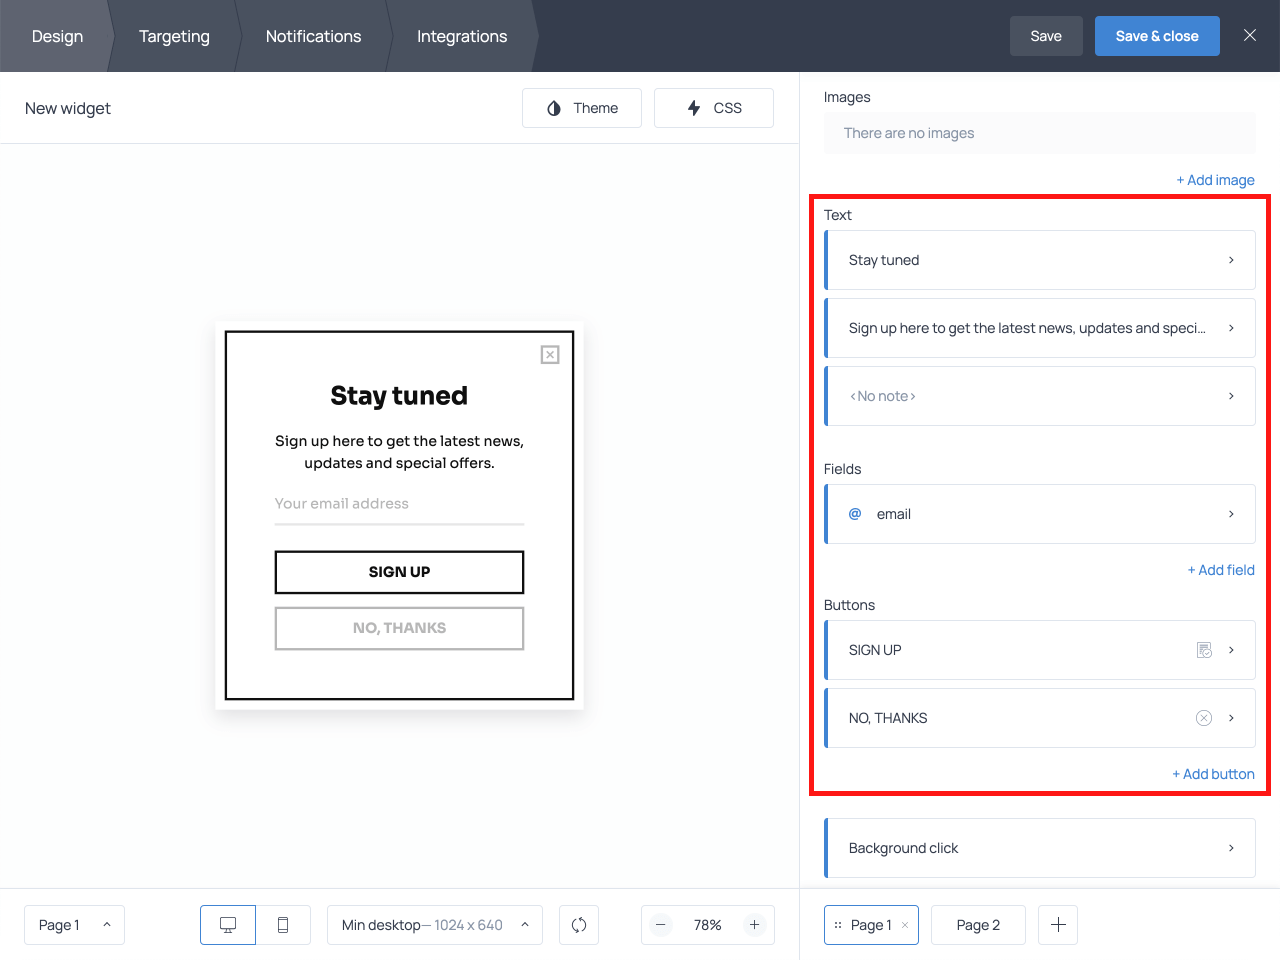 How to edit the text on the email opt-in popup in Getsitecontrol